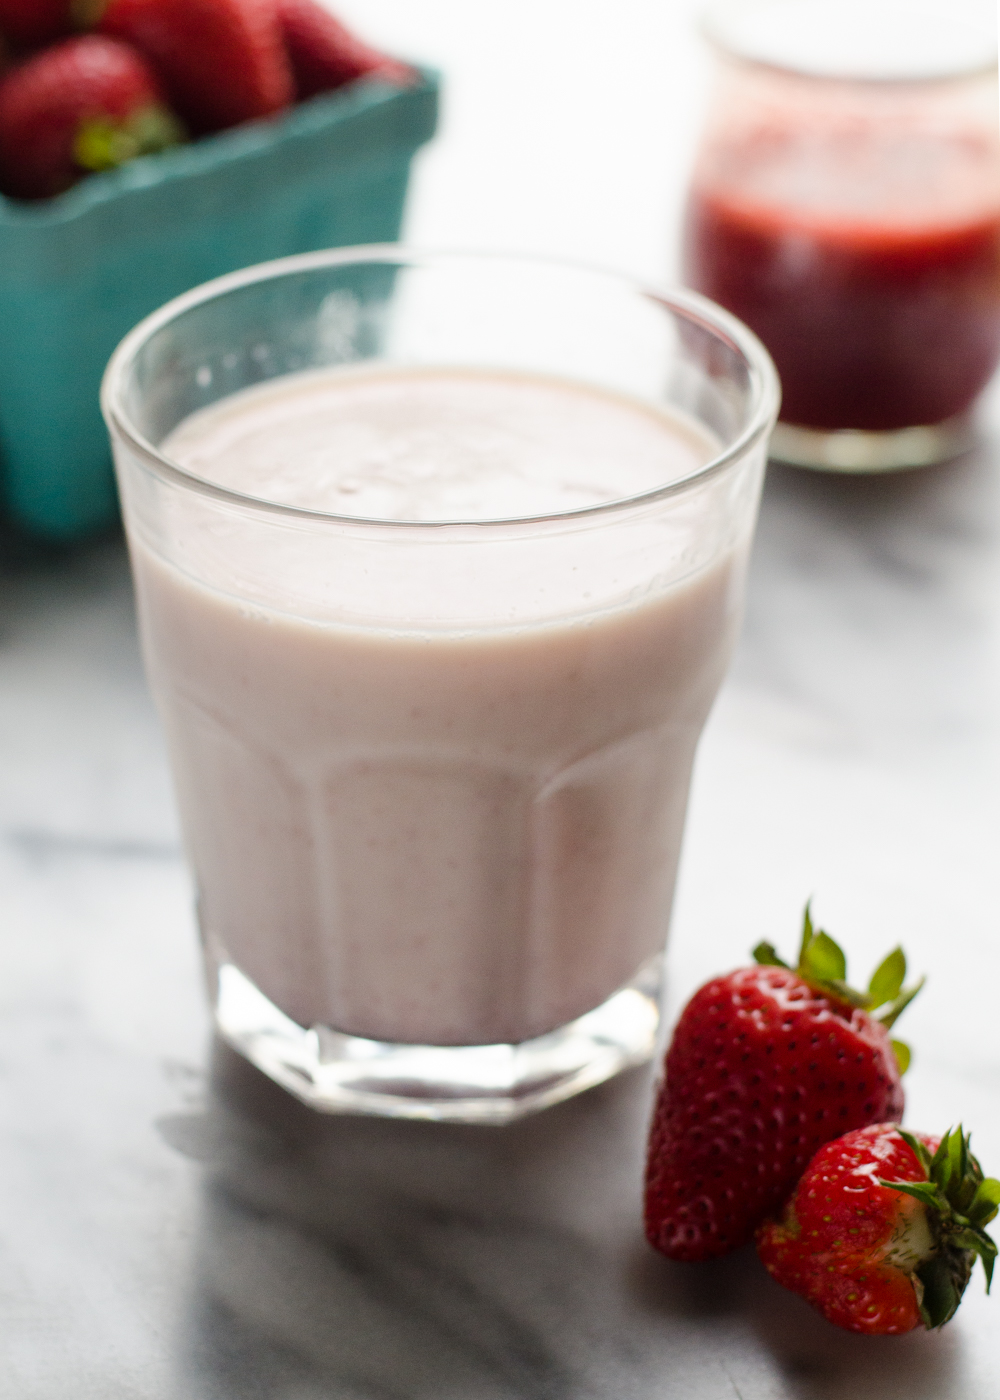 Homemade Strawberry Syrup for Strawberry Milk